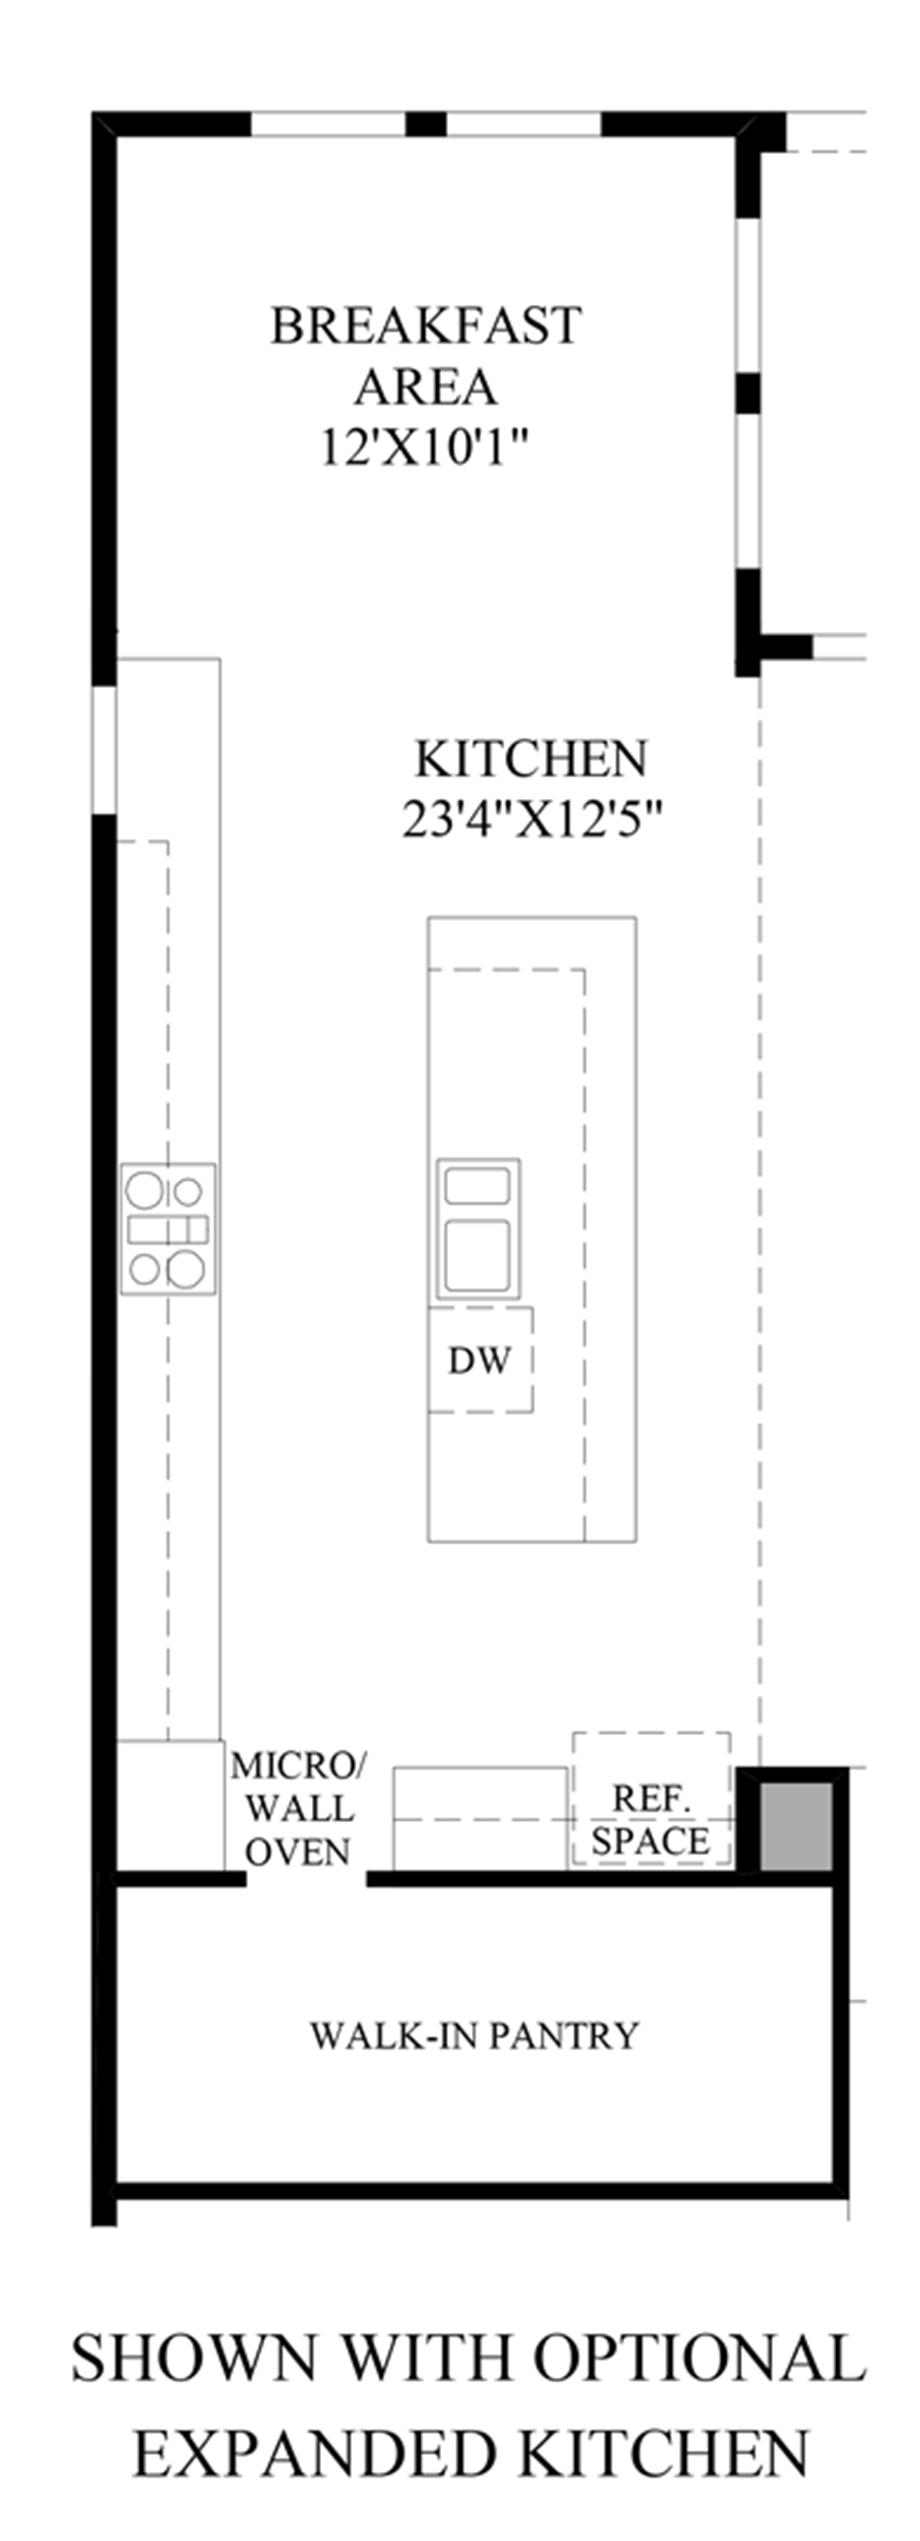 Optional Expanded Kitchen Floor Plan